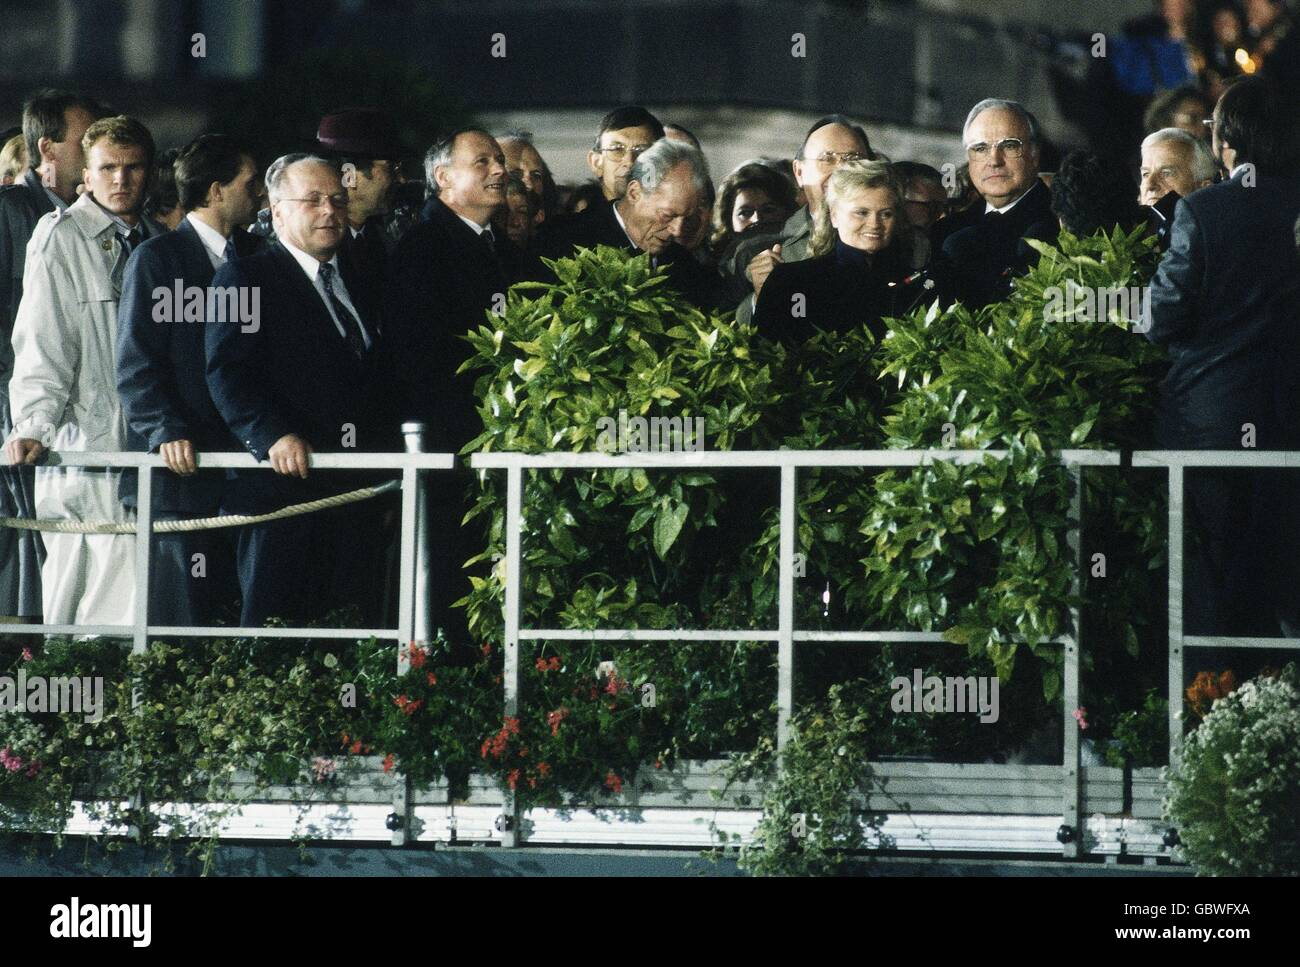 geography / travel, Germany, German reunification, politicians on stage, during ceremony of the 'German Unity', - Stock Image